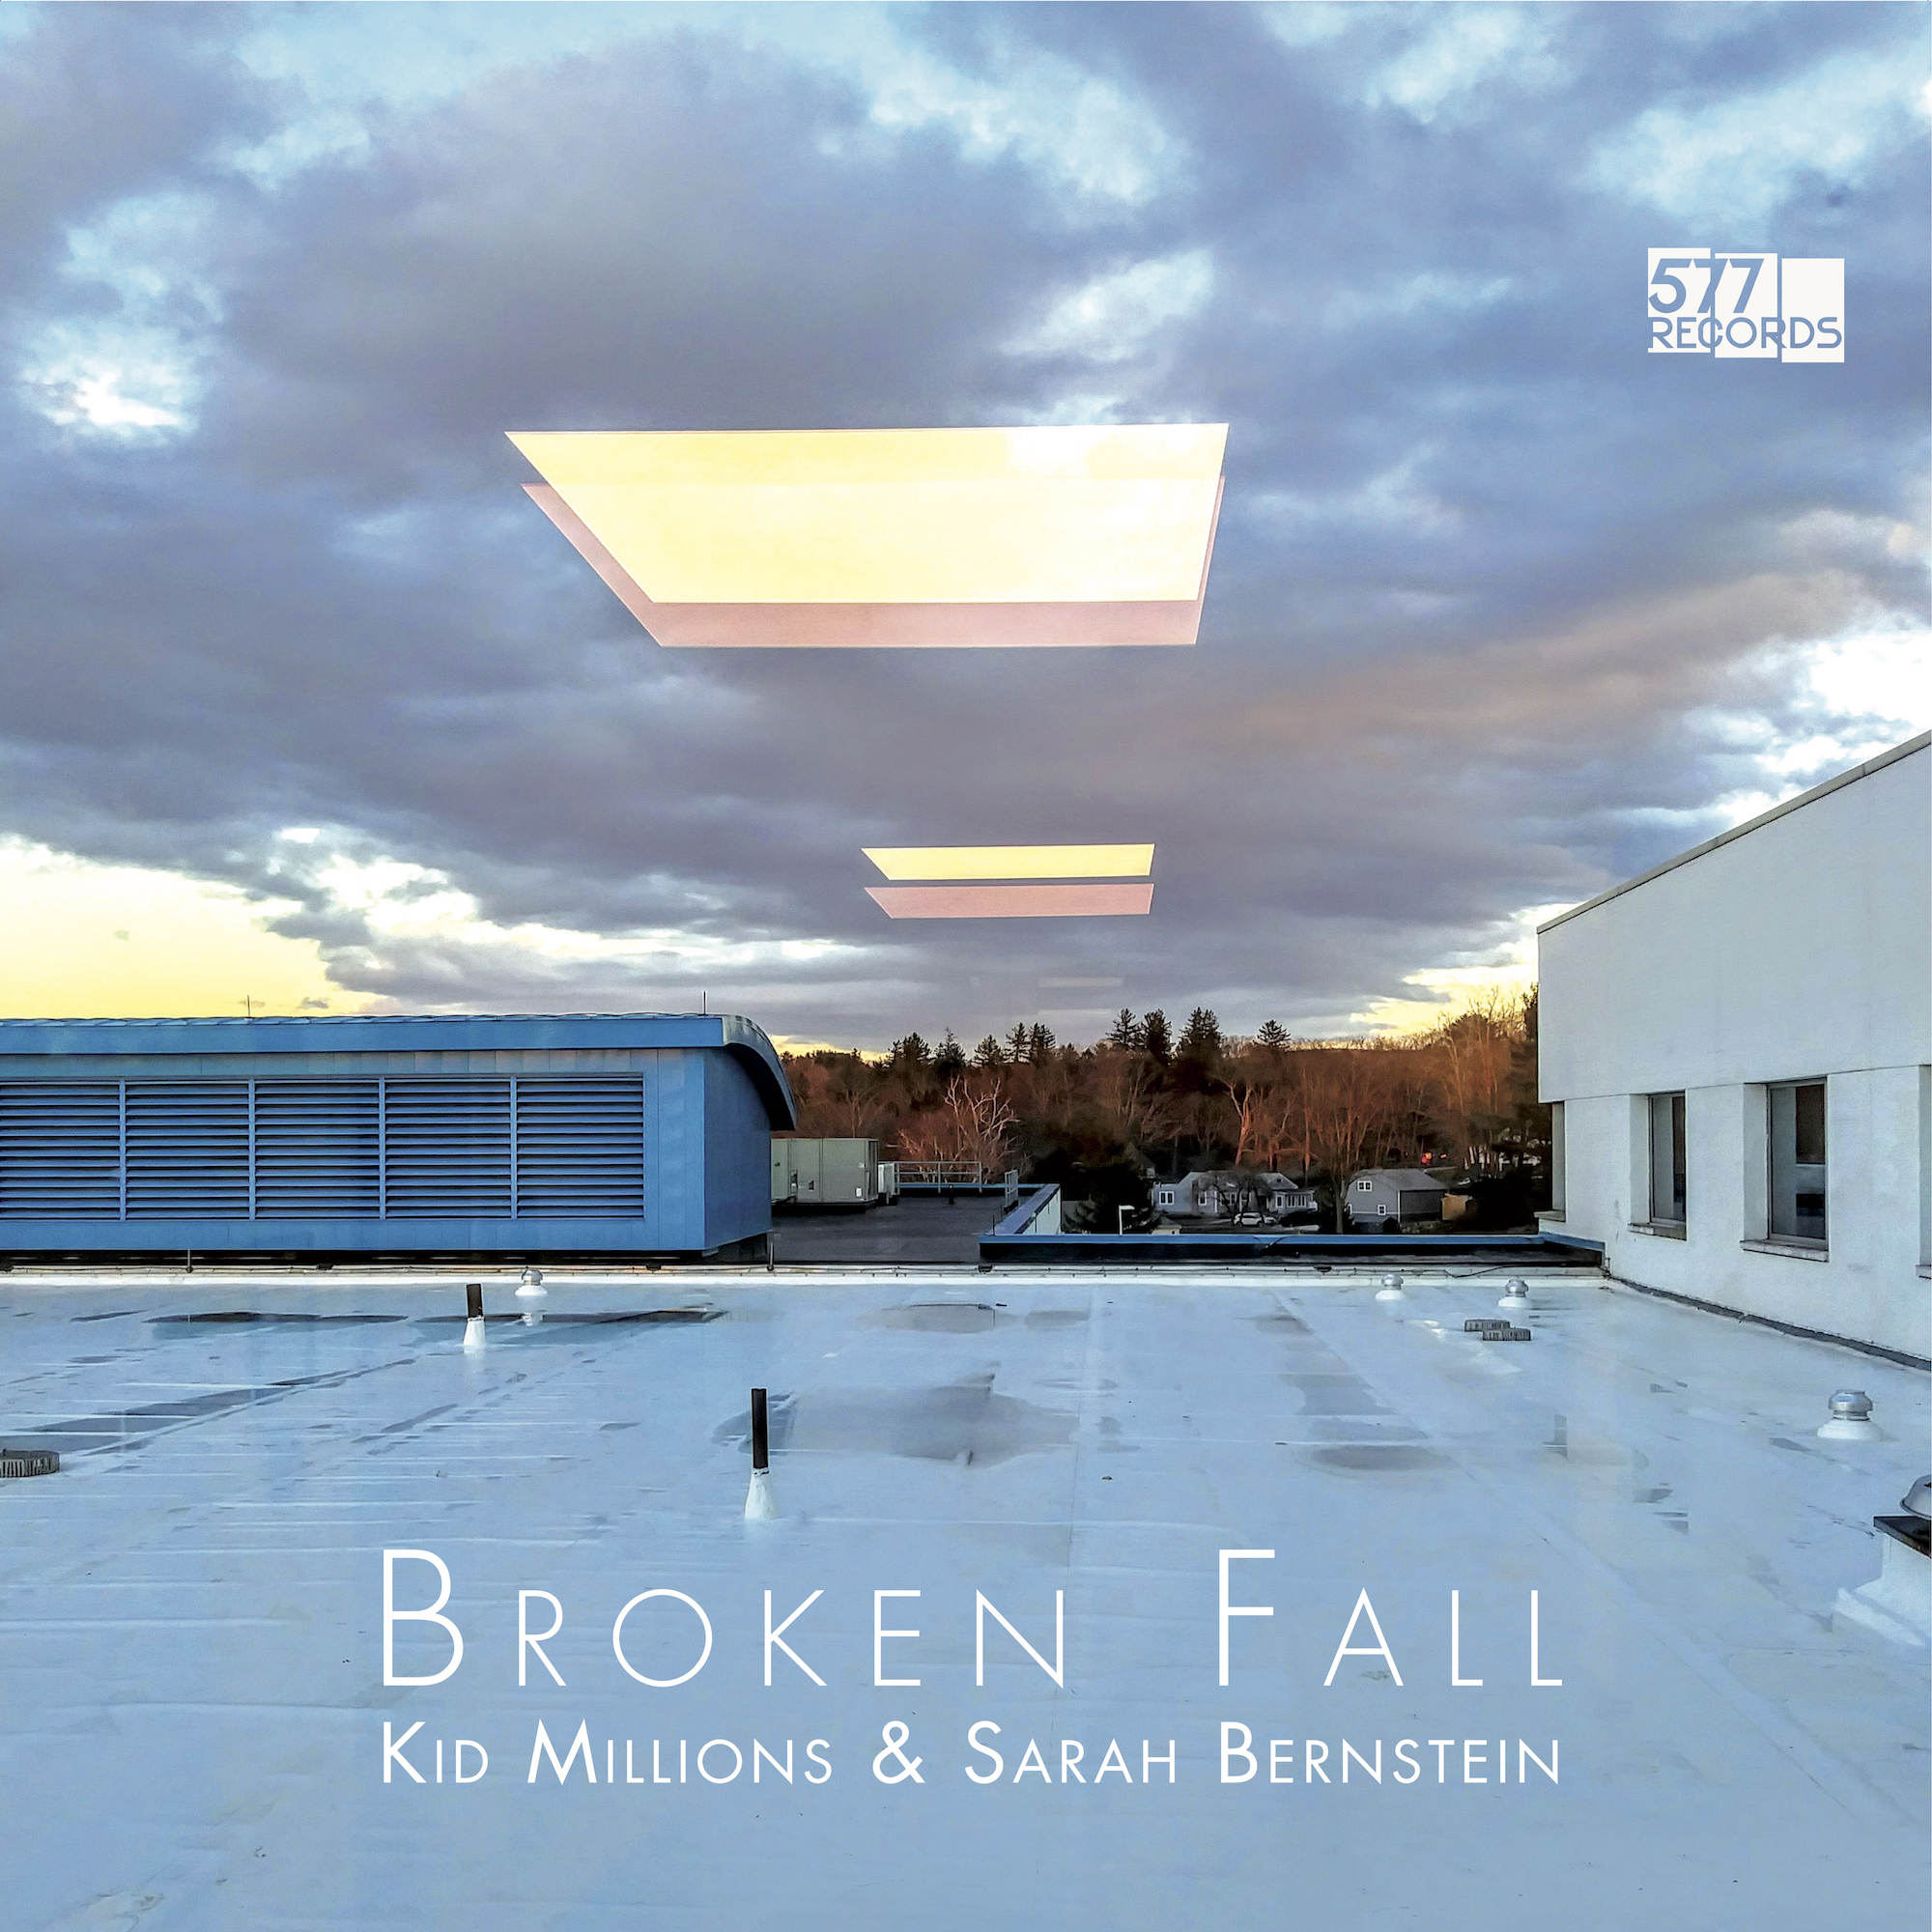 KID MILLIONS & SARAH BERNSTEIN BROKEN FALL